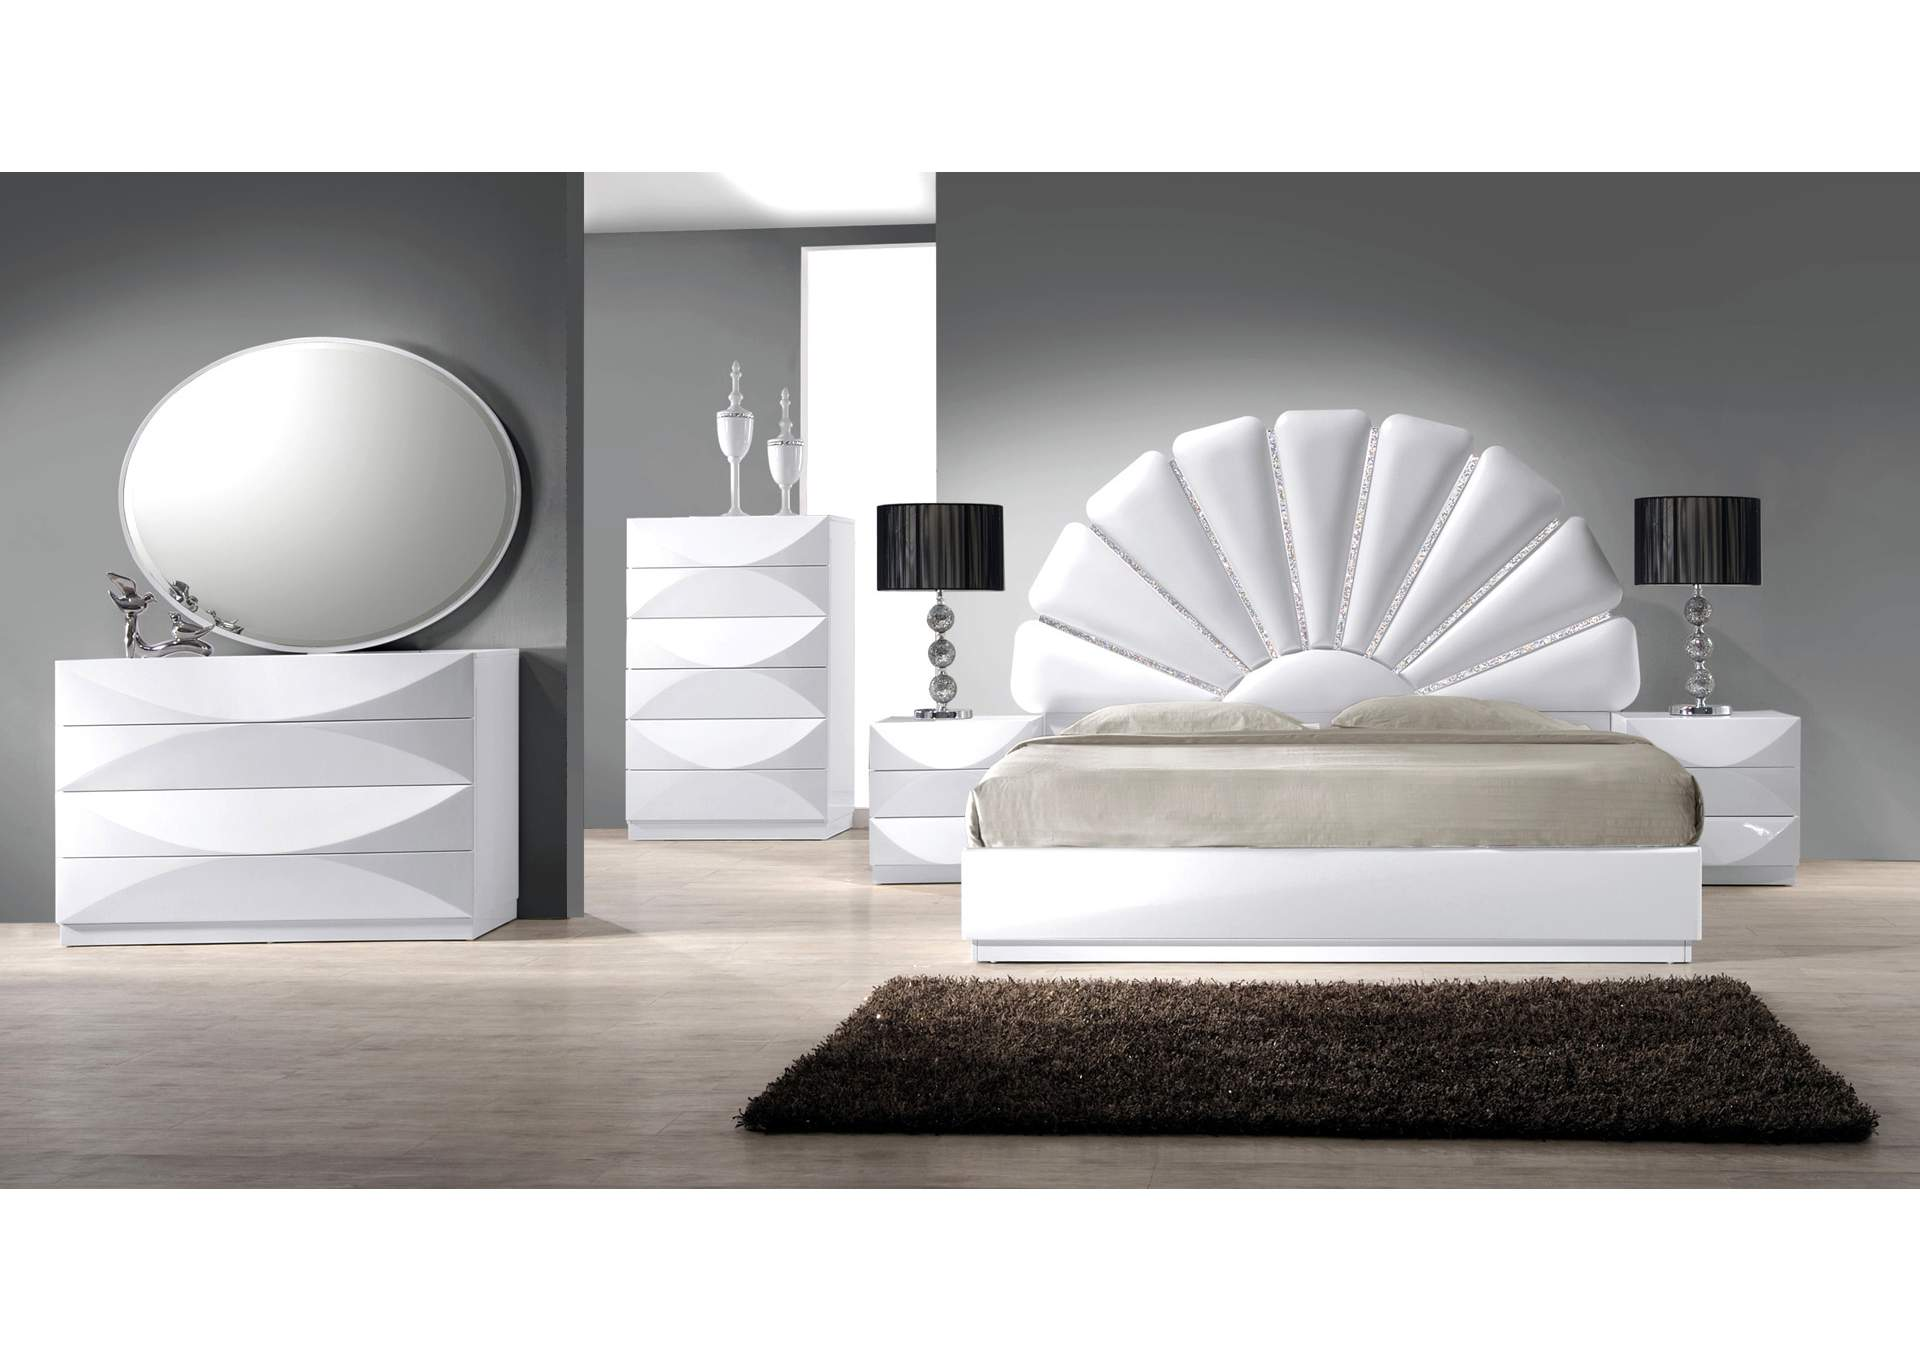 Paris Gloss White 8 Drawer Dresser,Chintaly Imports